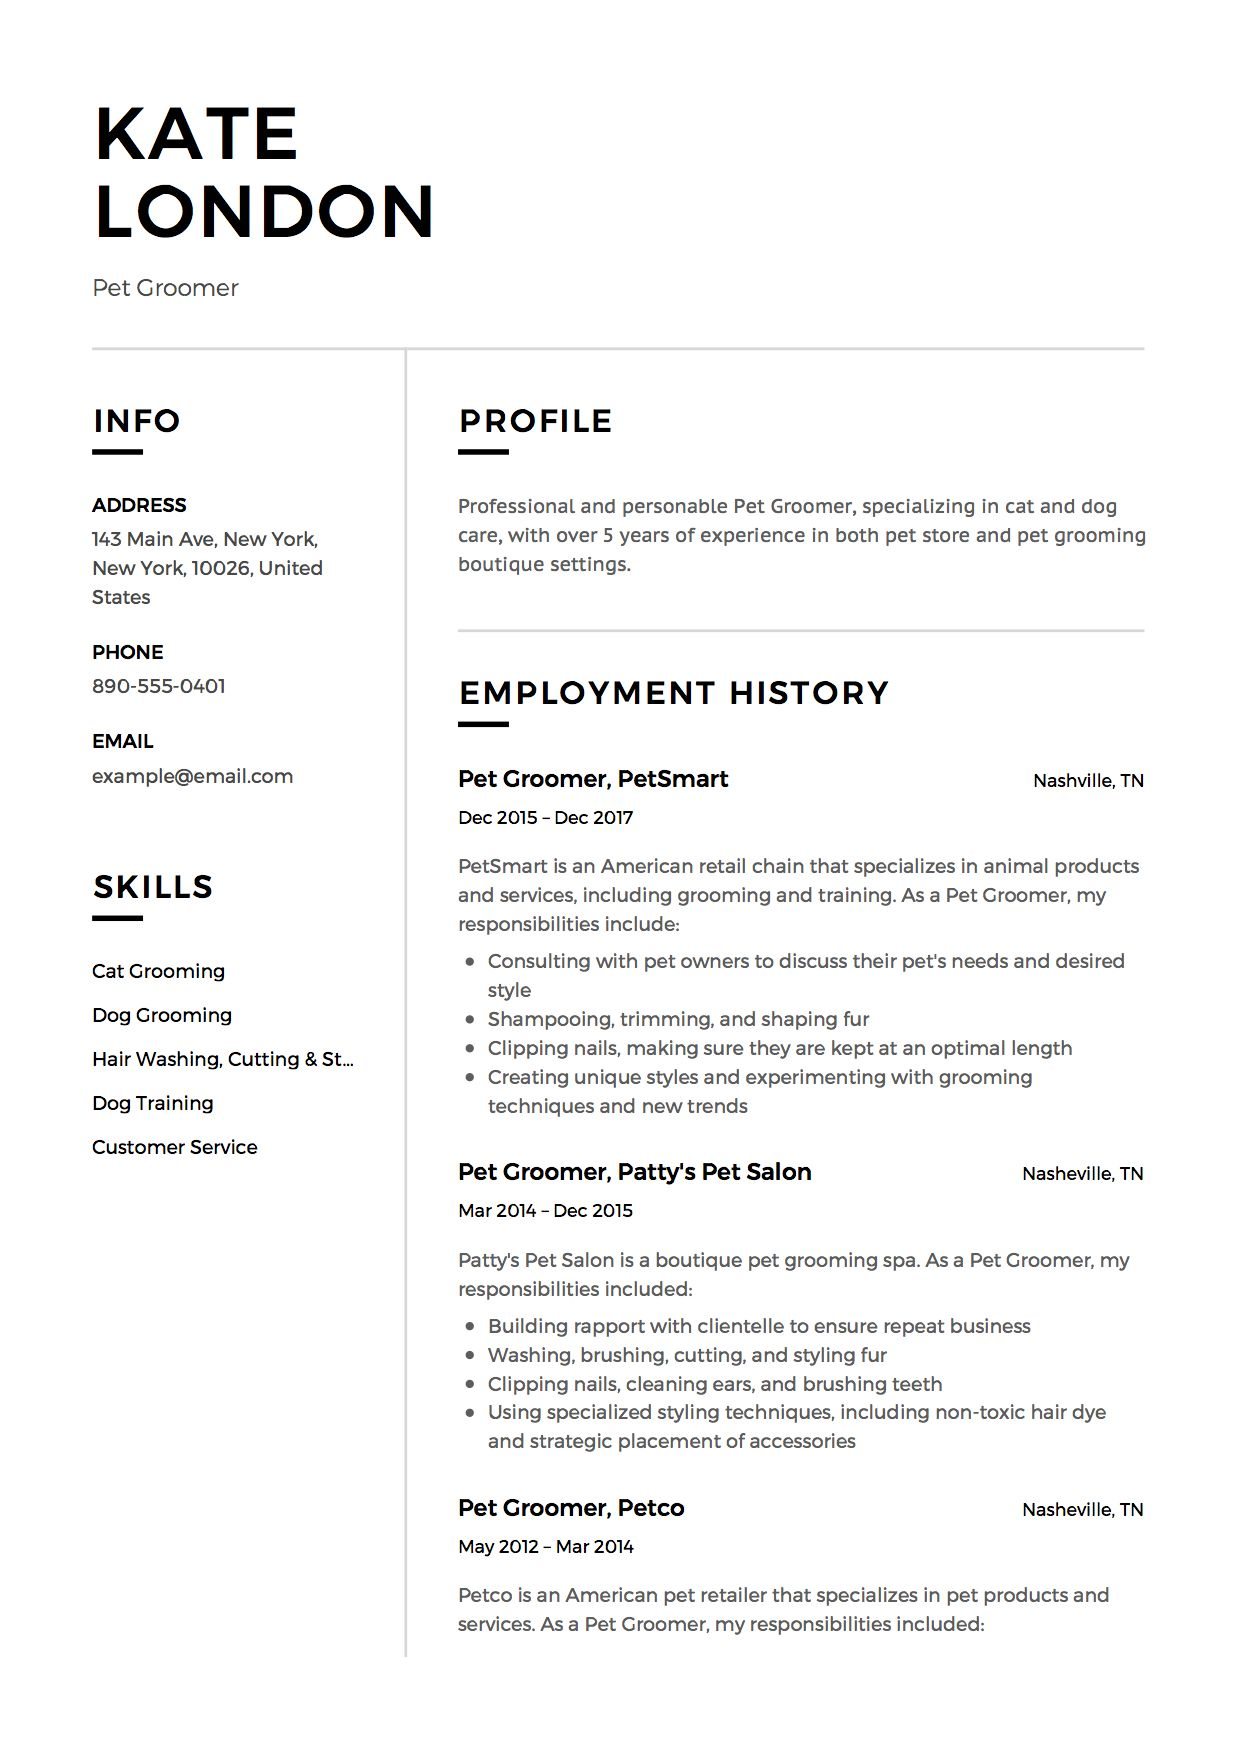 Pet Groomer Resume Example | Resume examples, Resume, Pet ...